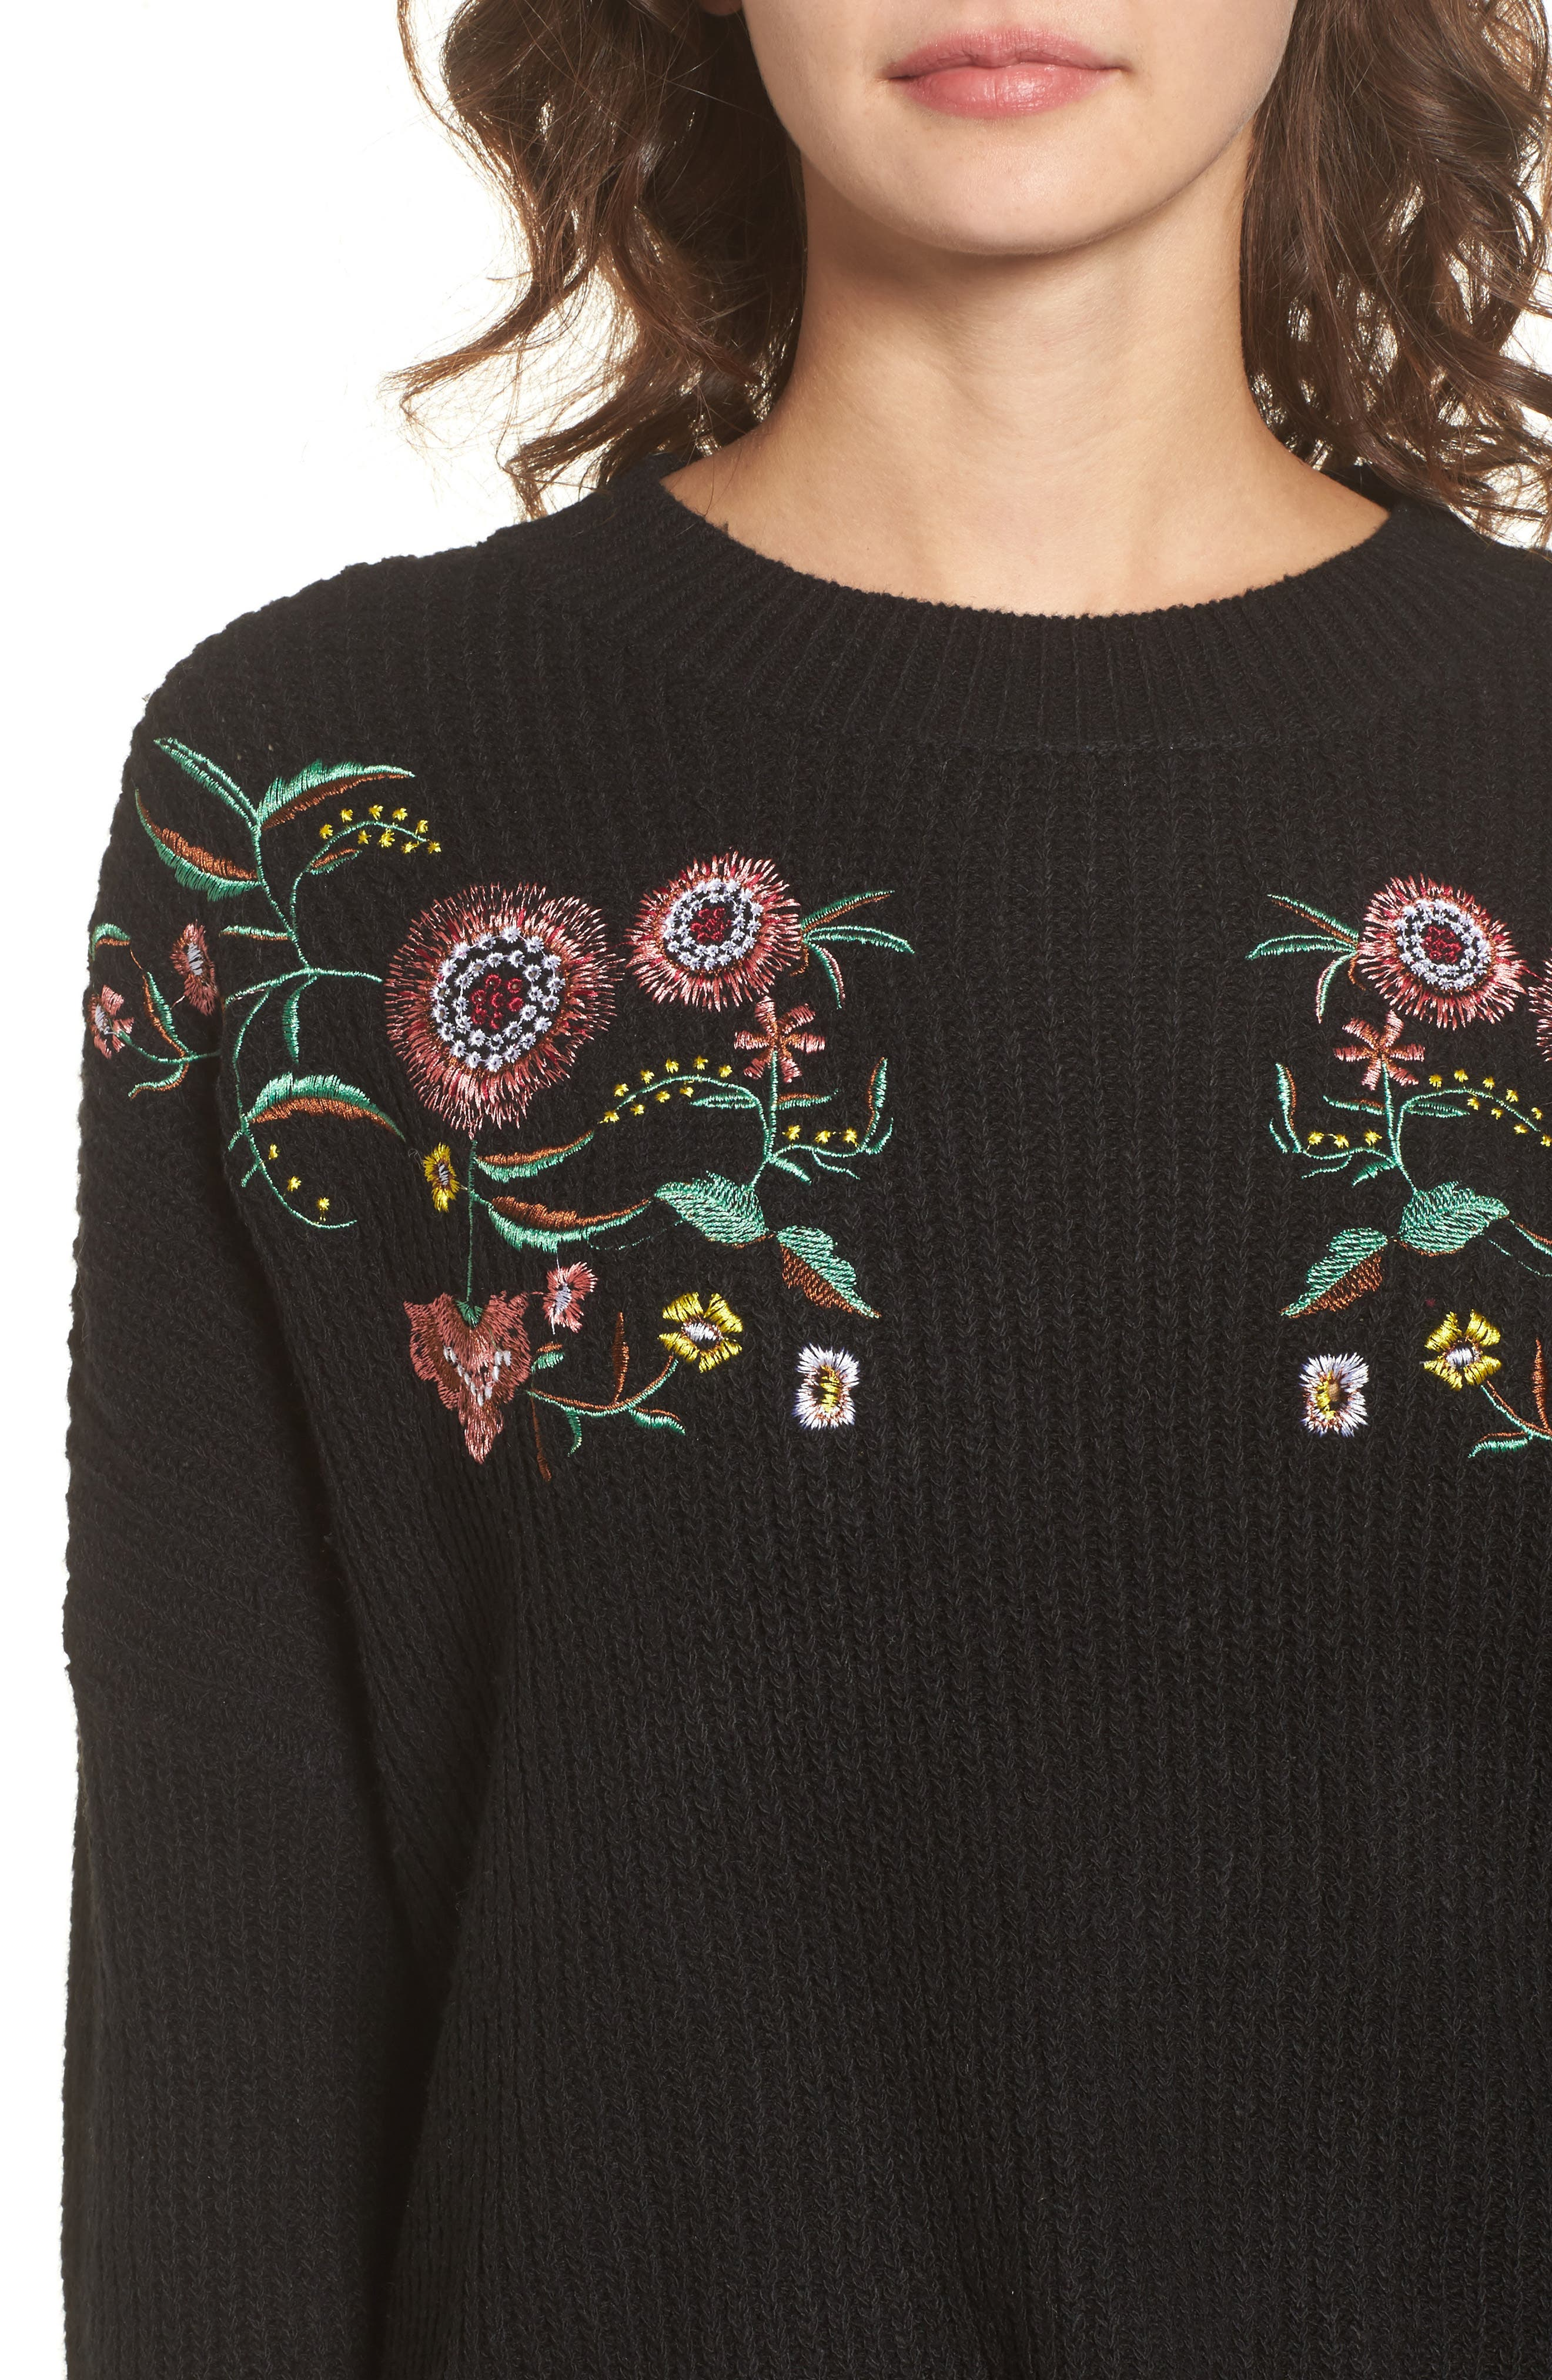 Embroidered Floral Sweater,                             Alternate thumbnail 4, color,                             001